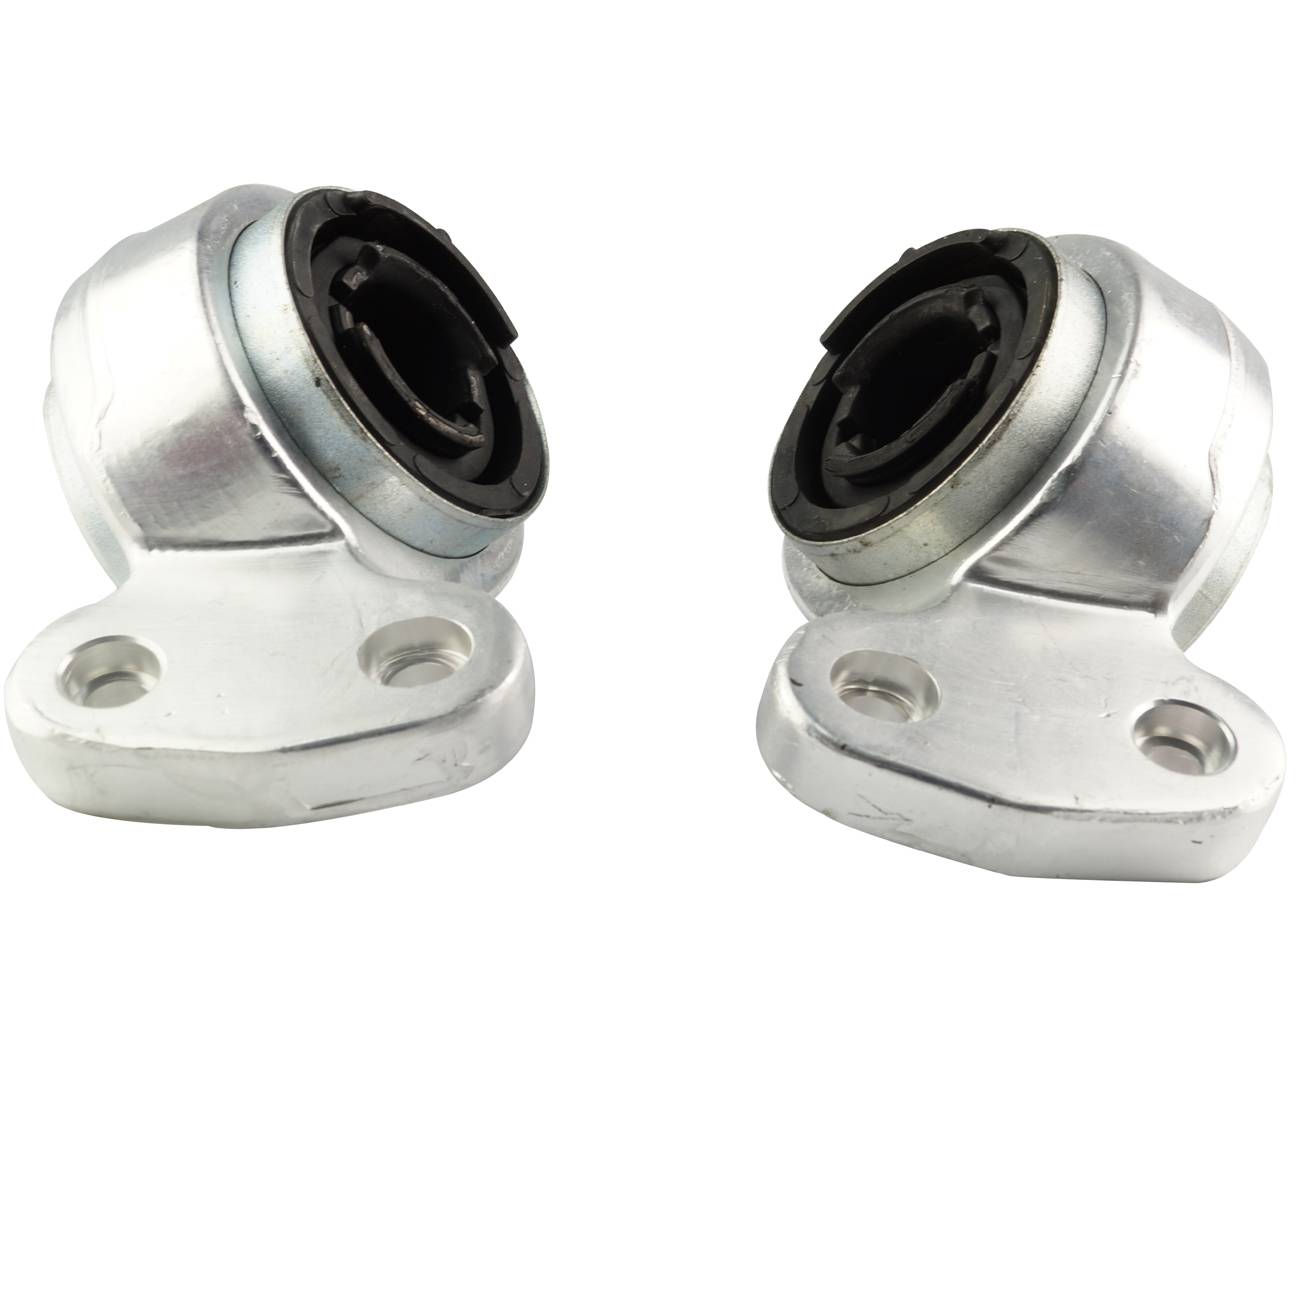 PAIR  NEW FAST SHIPPING FRONT LOWER CONTROL ARM BUSHING  FOR BMW 320i 2001-2005